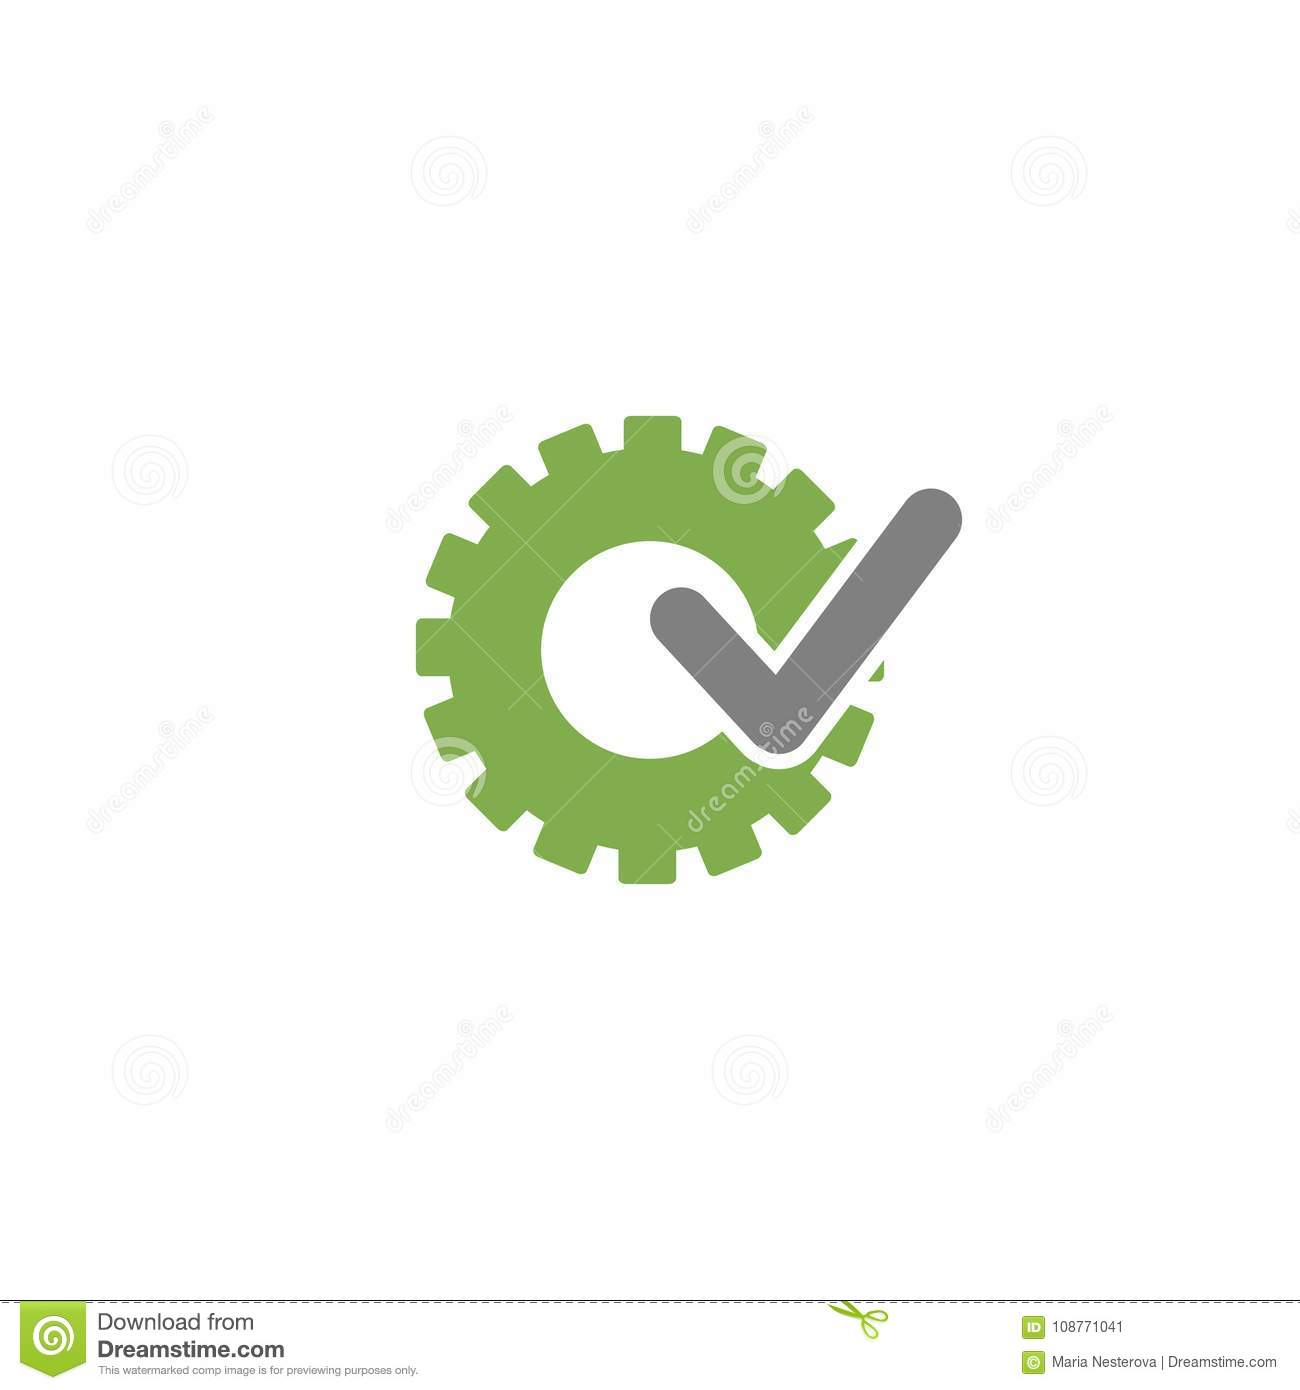 Green gear with grey tick icon. Vector flat illustration for technology or innovation.